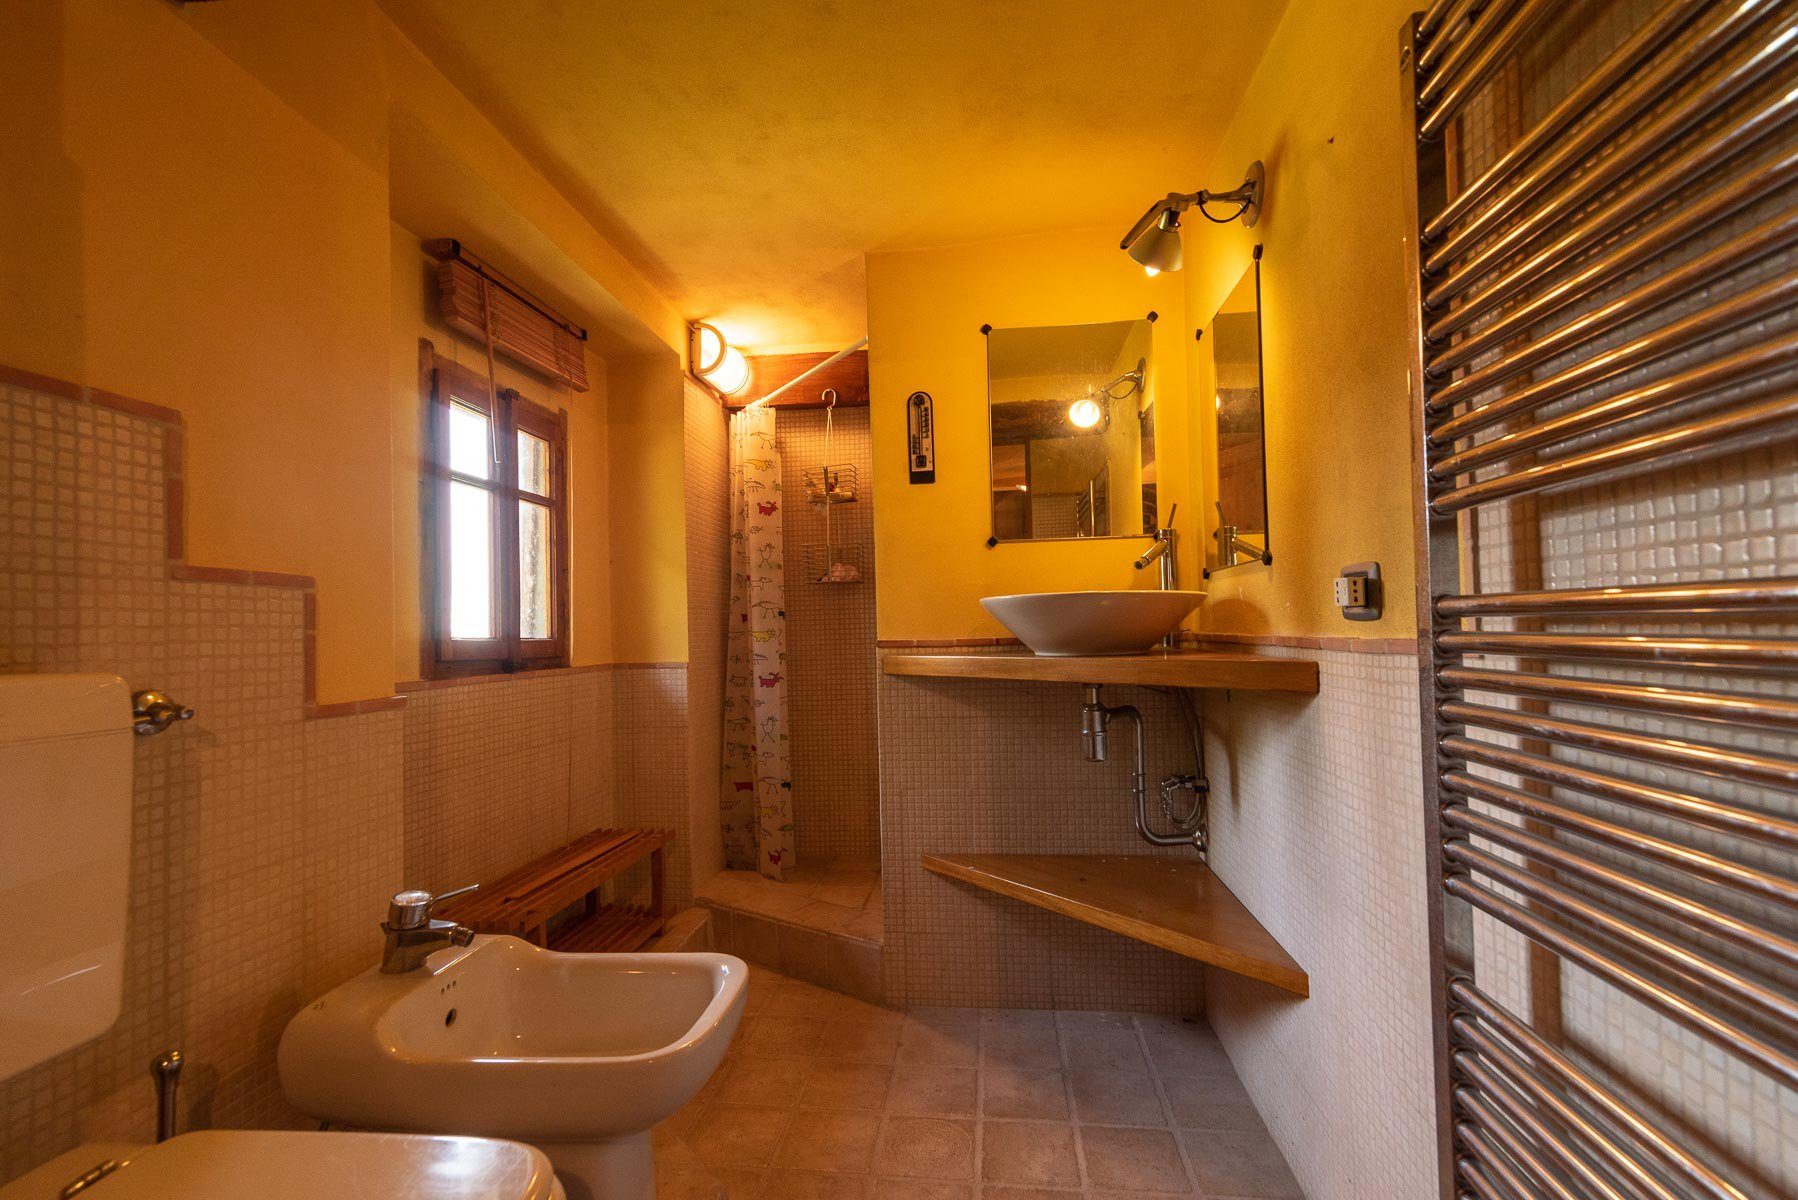 House in Paruzzaro for sale near the lakeside- bathroom 02